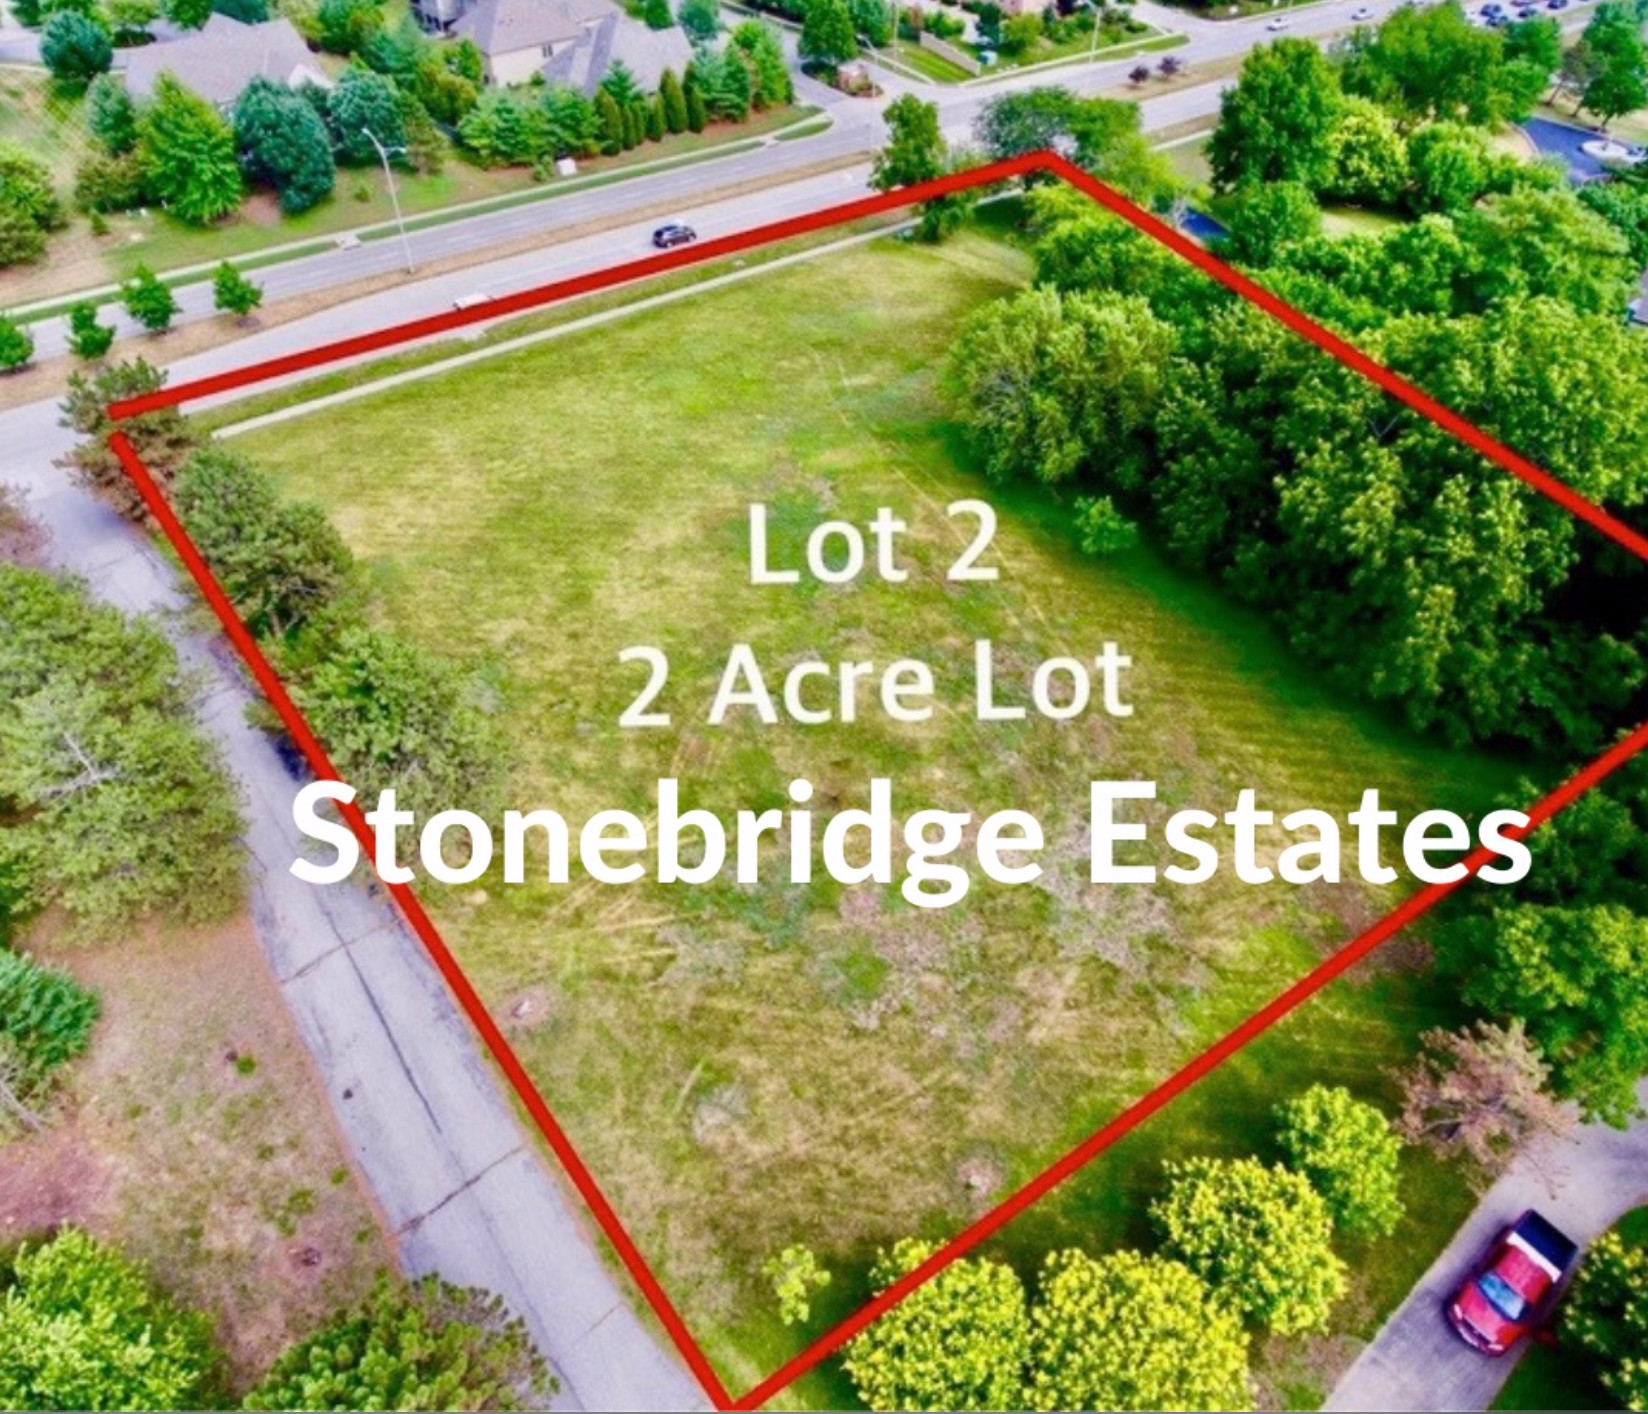 Stonebridge Estates Lot 2 5551 W 150th St OP, KS 66223 Custom Build